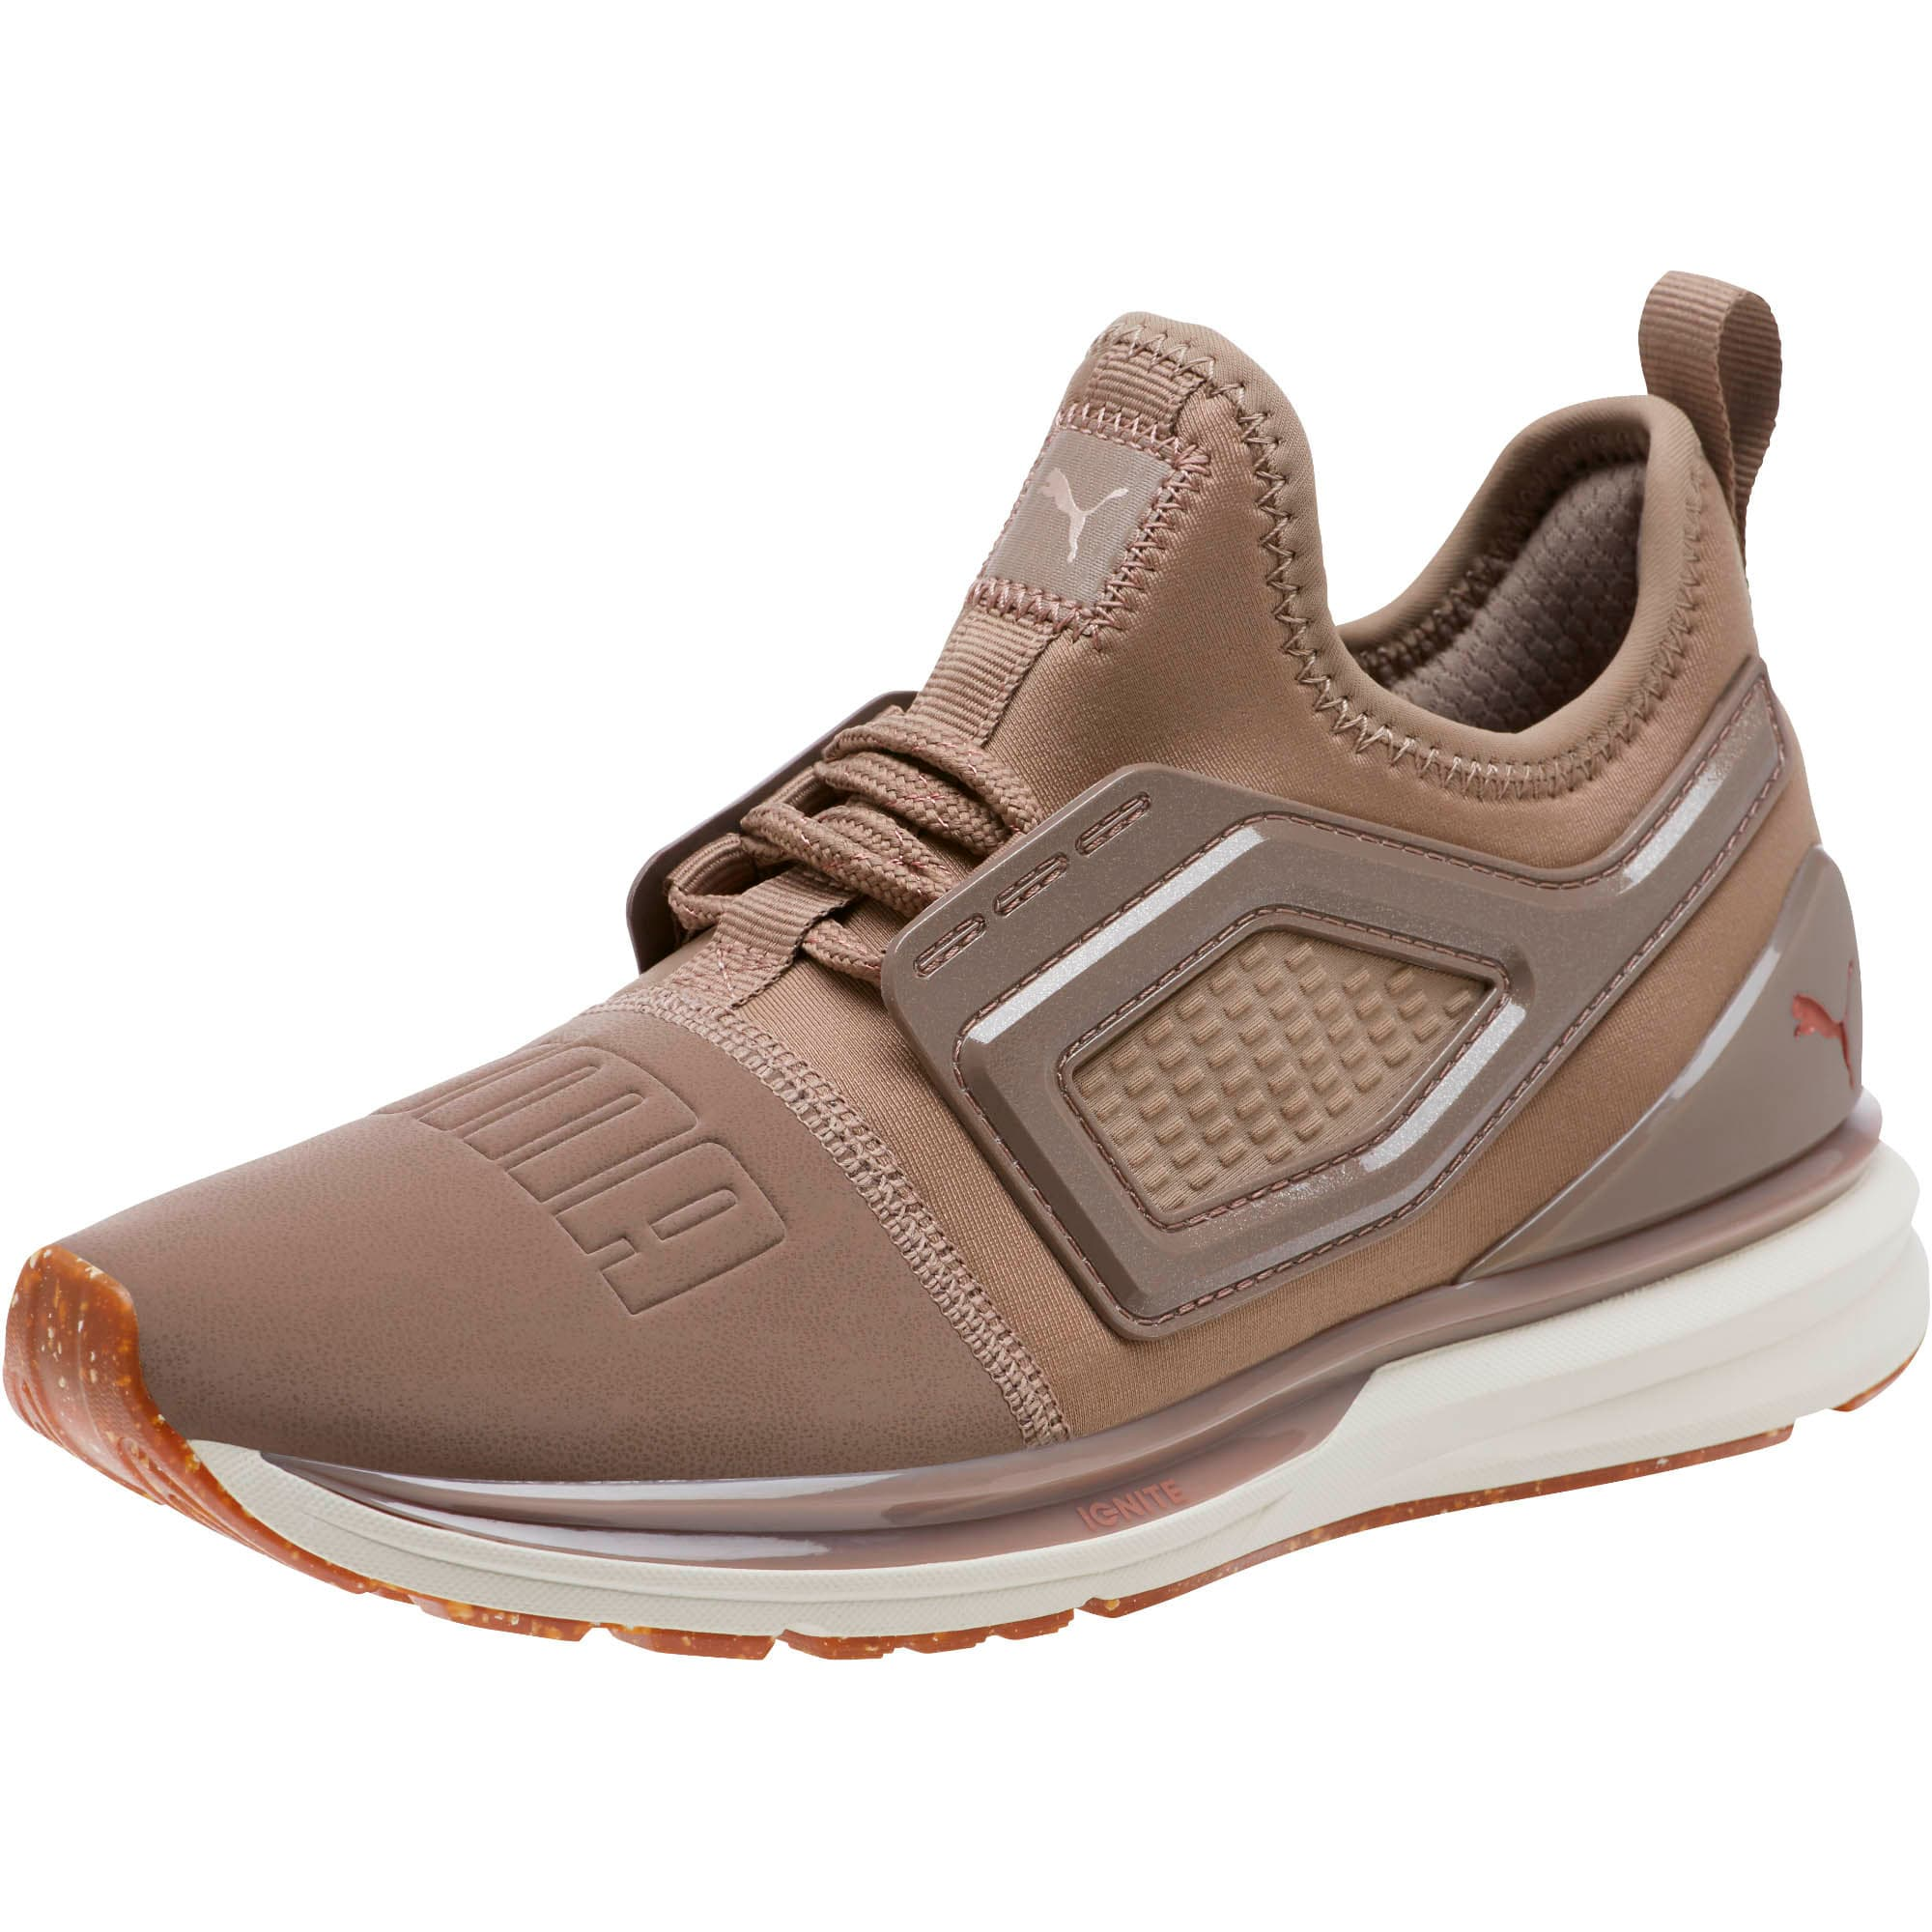 Thumbnail 1 of Limitless 2 Crafted Women's Sneakers, Taupe Gray-Rose Gold, medium